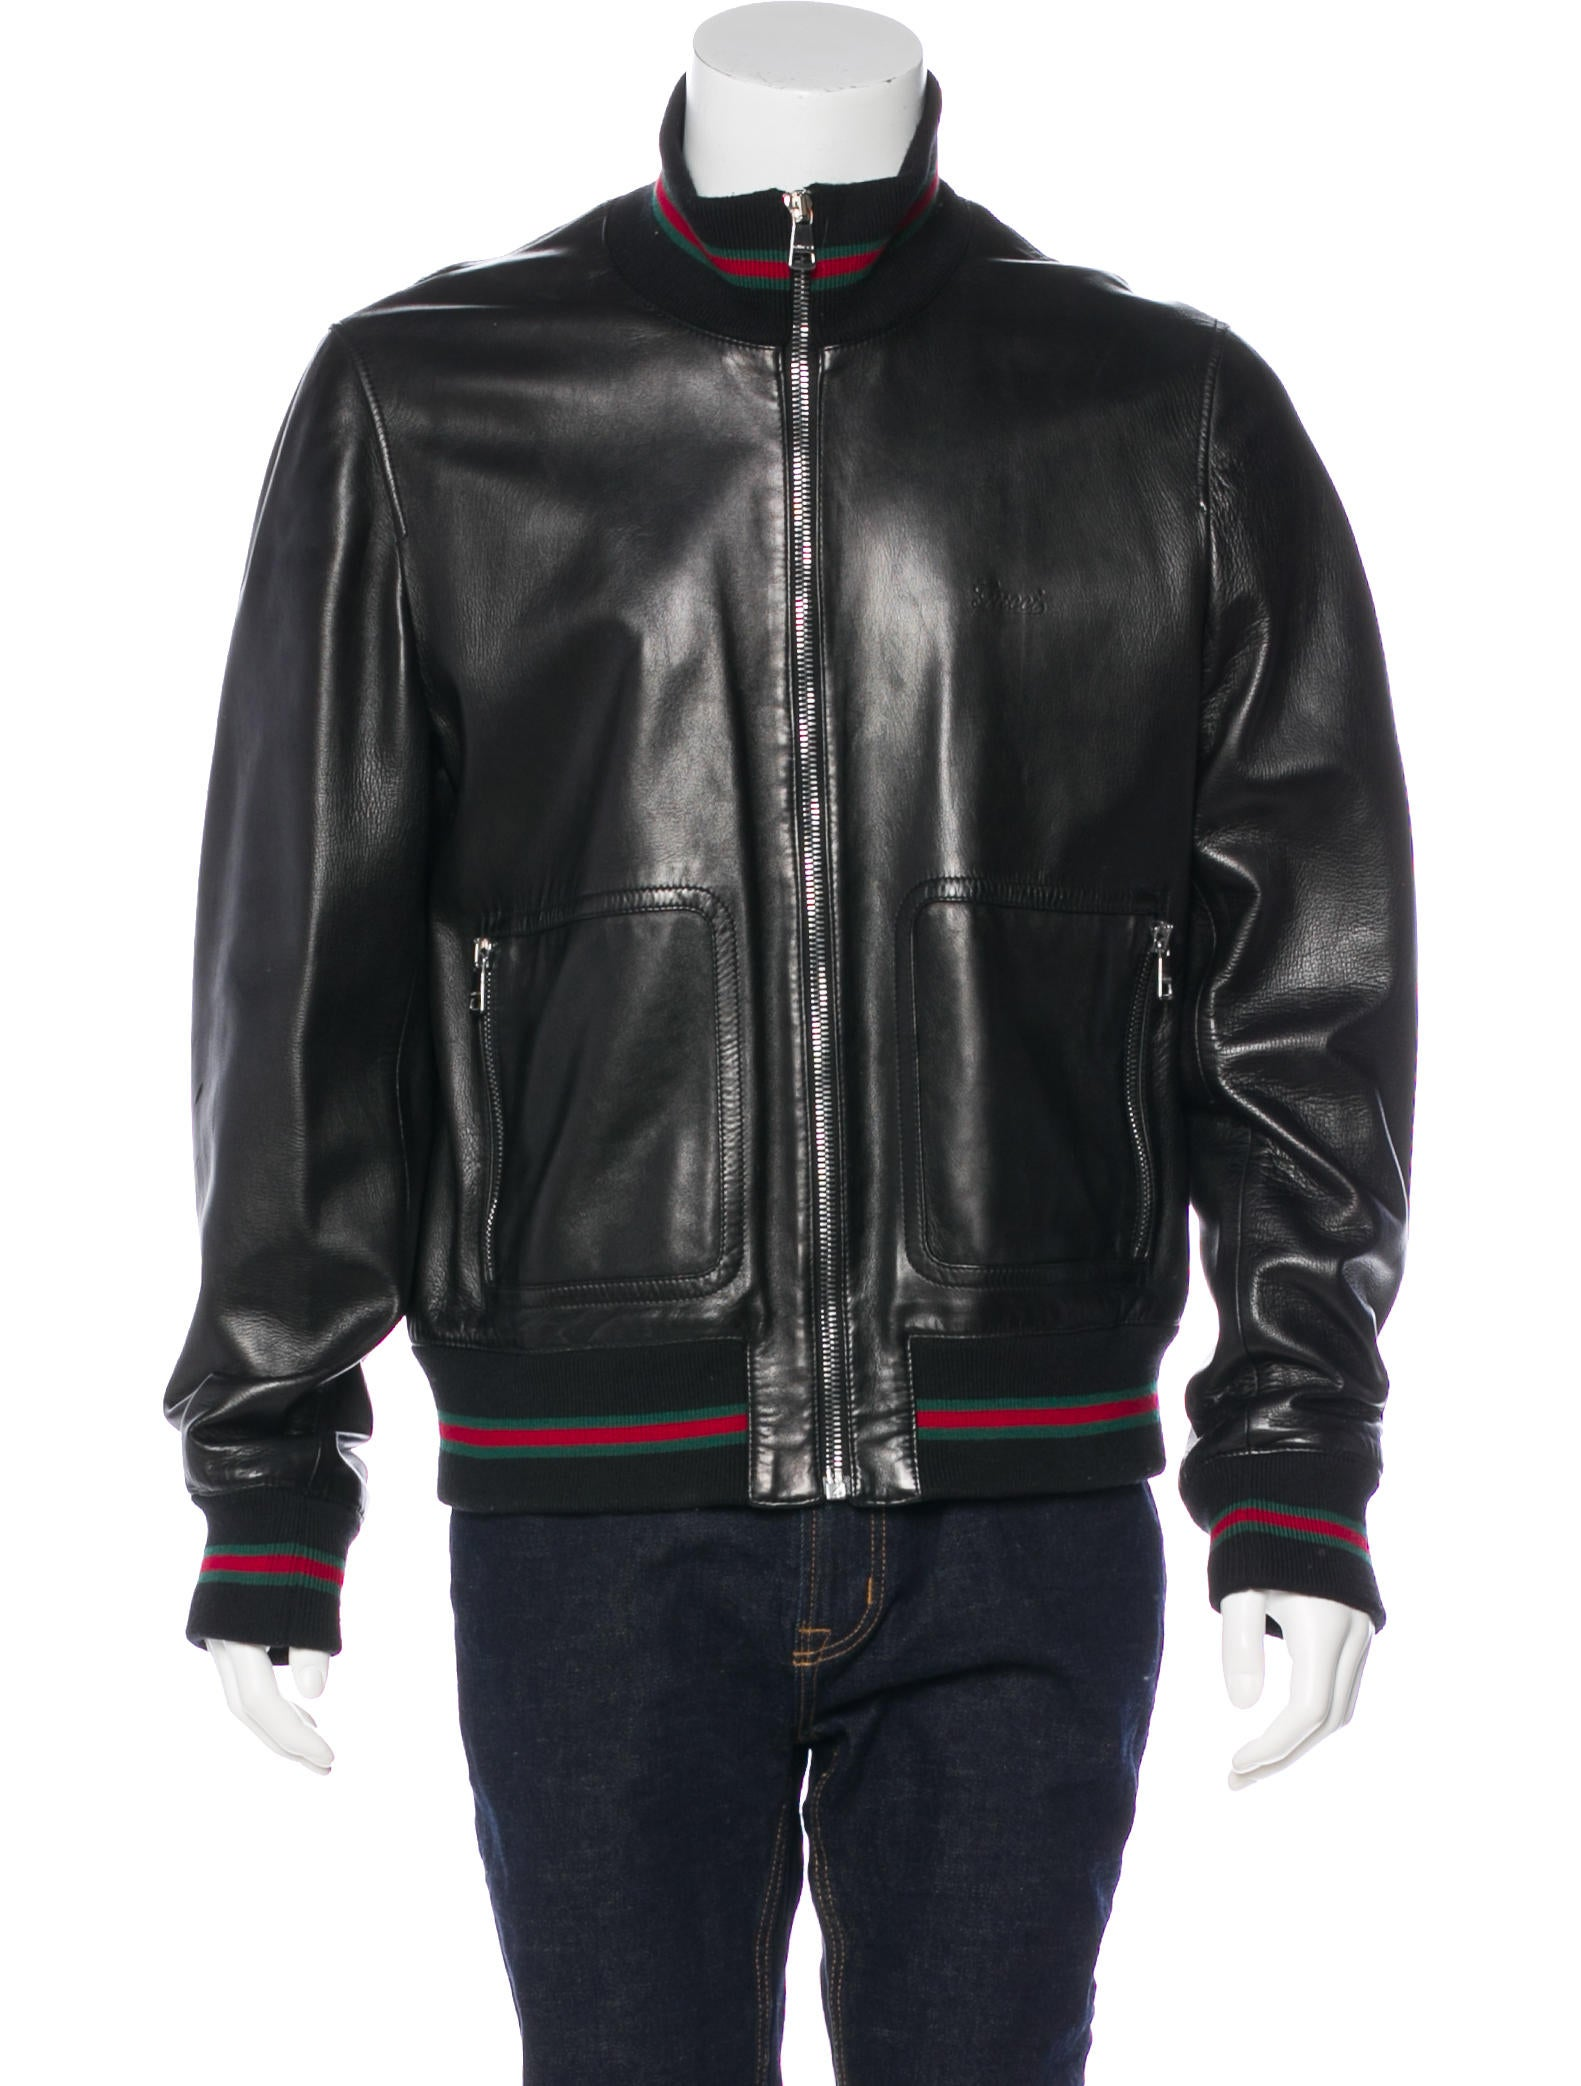 0f62dcc23 Gucci Web-Trimmed Leather Jacket - Clothing - GUC242061 | The RealReal